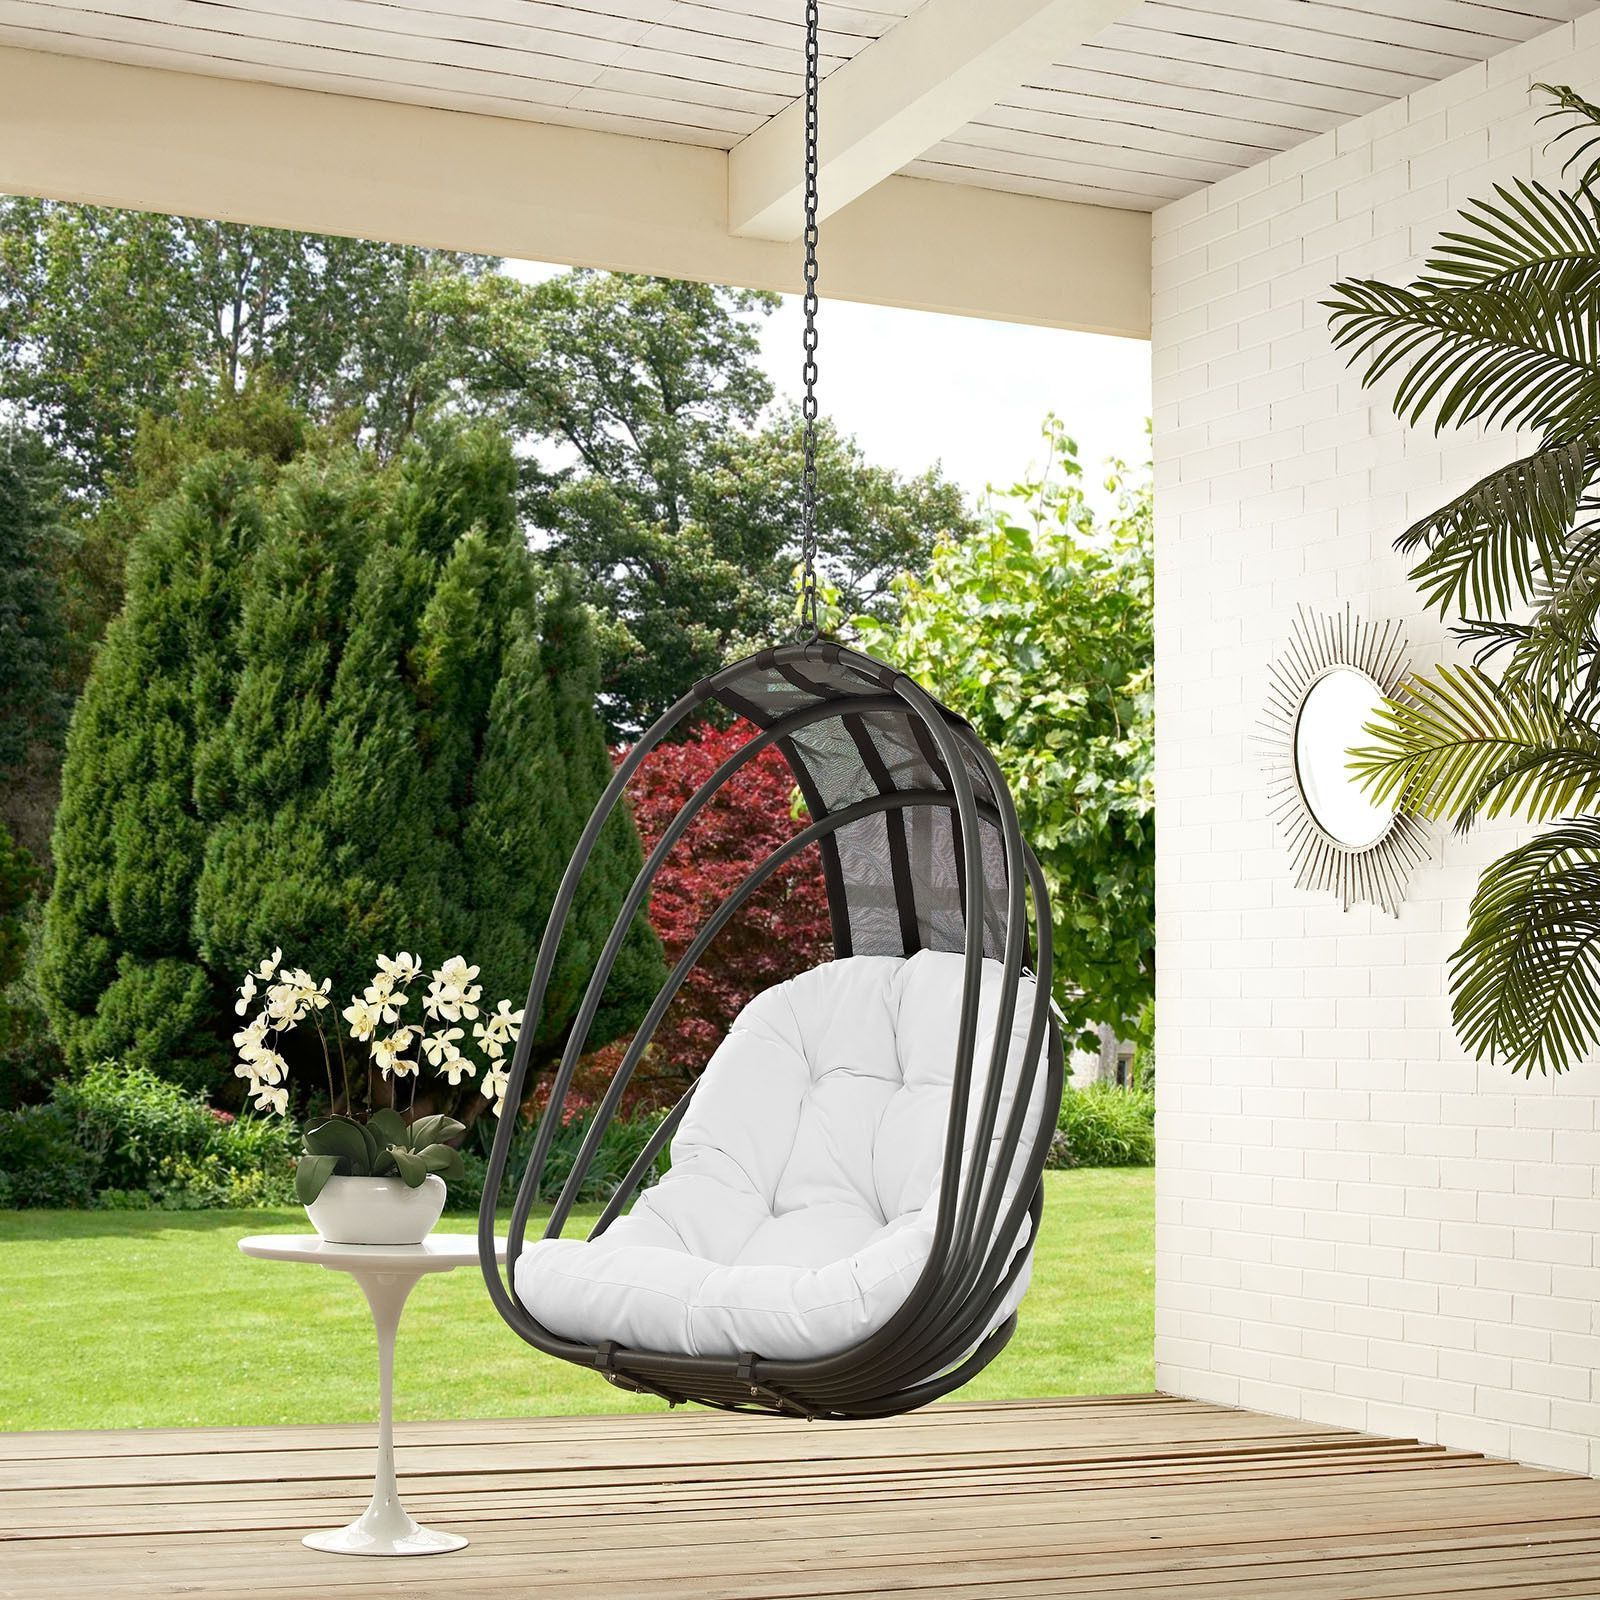 Current Stand Multiple Chair Set Modway Likable Rattan Glider Within Wicker Glider Outdoor Porch Swings With Stand (Gallery 22 of 30)